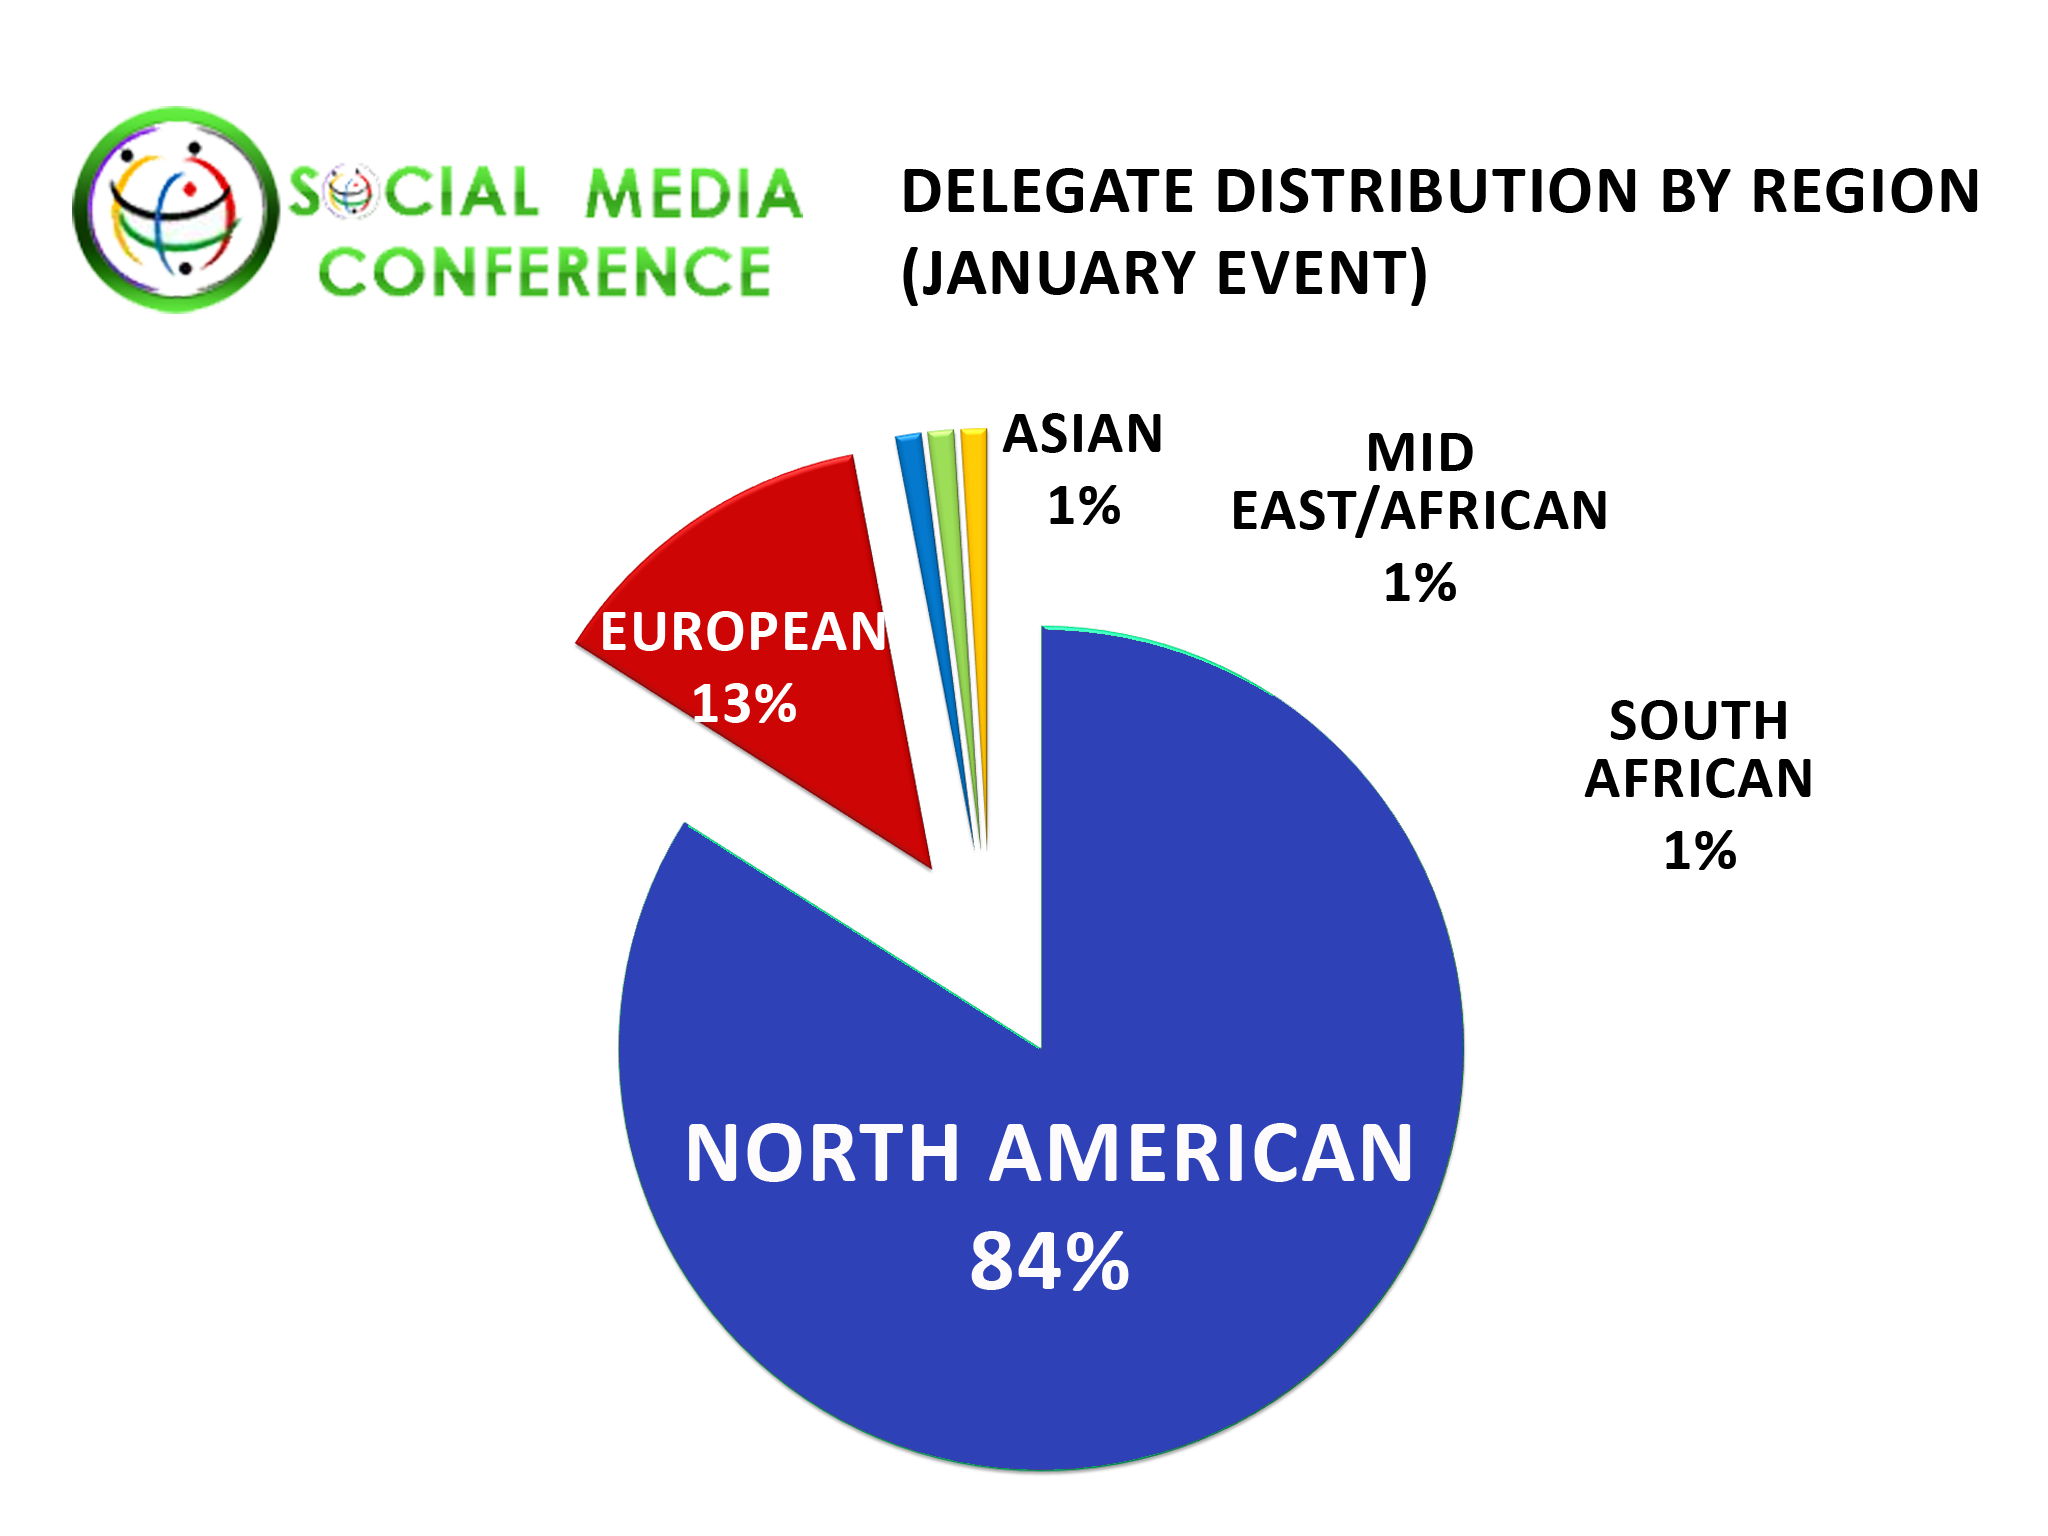 Social Networking Conference Regional Delegate Distribution: January